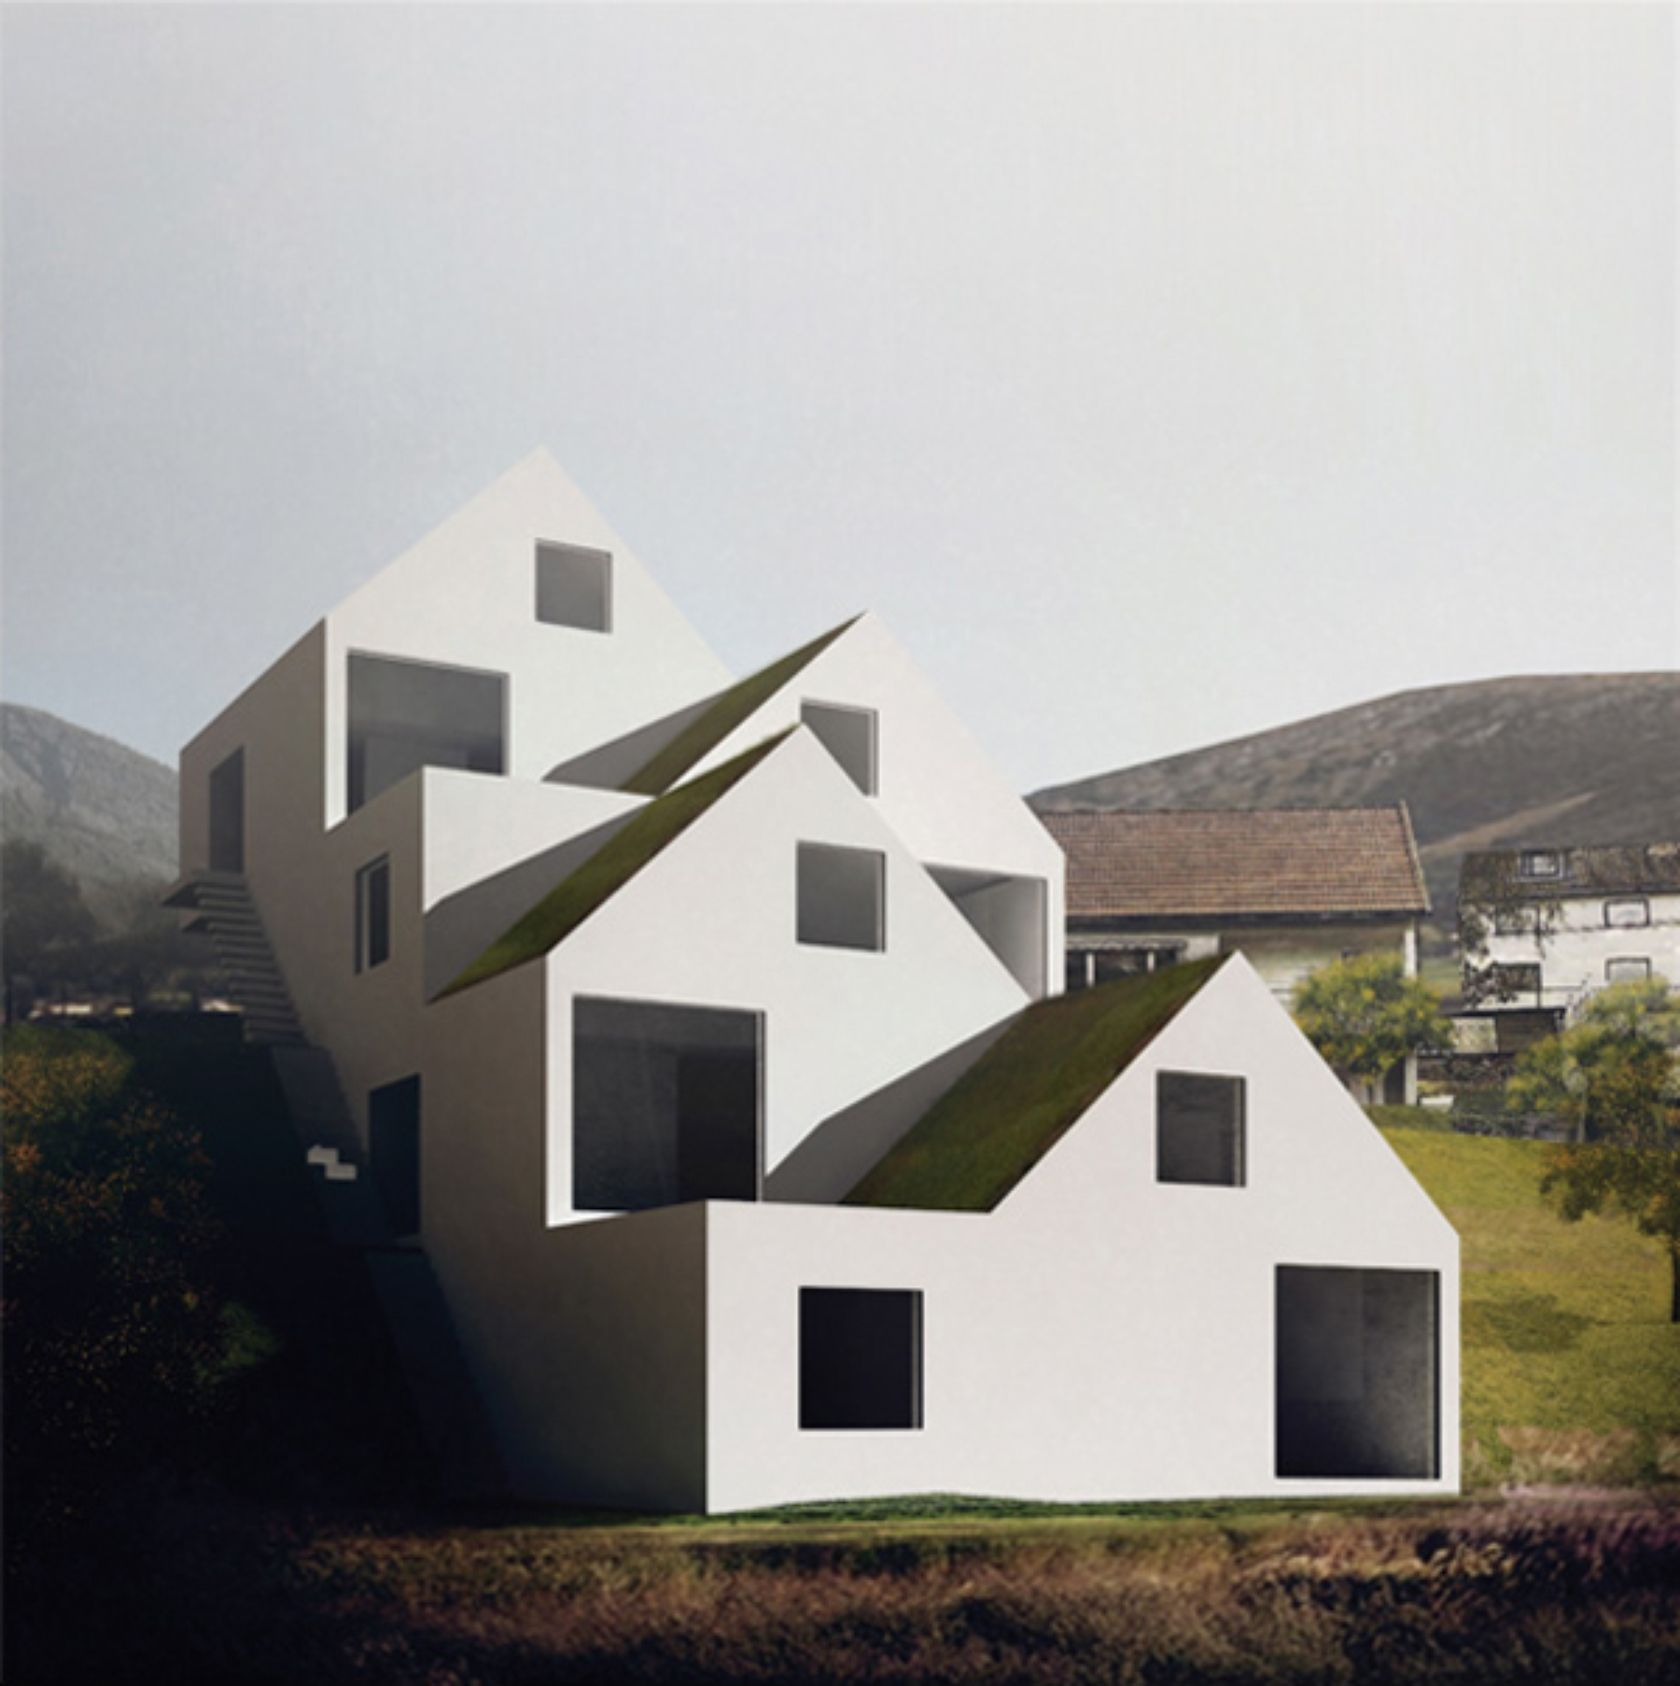 4 houses oslo norway almost too graphic to be real for Architektur design studium